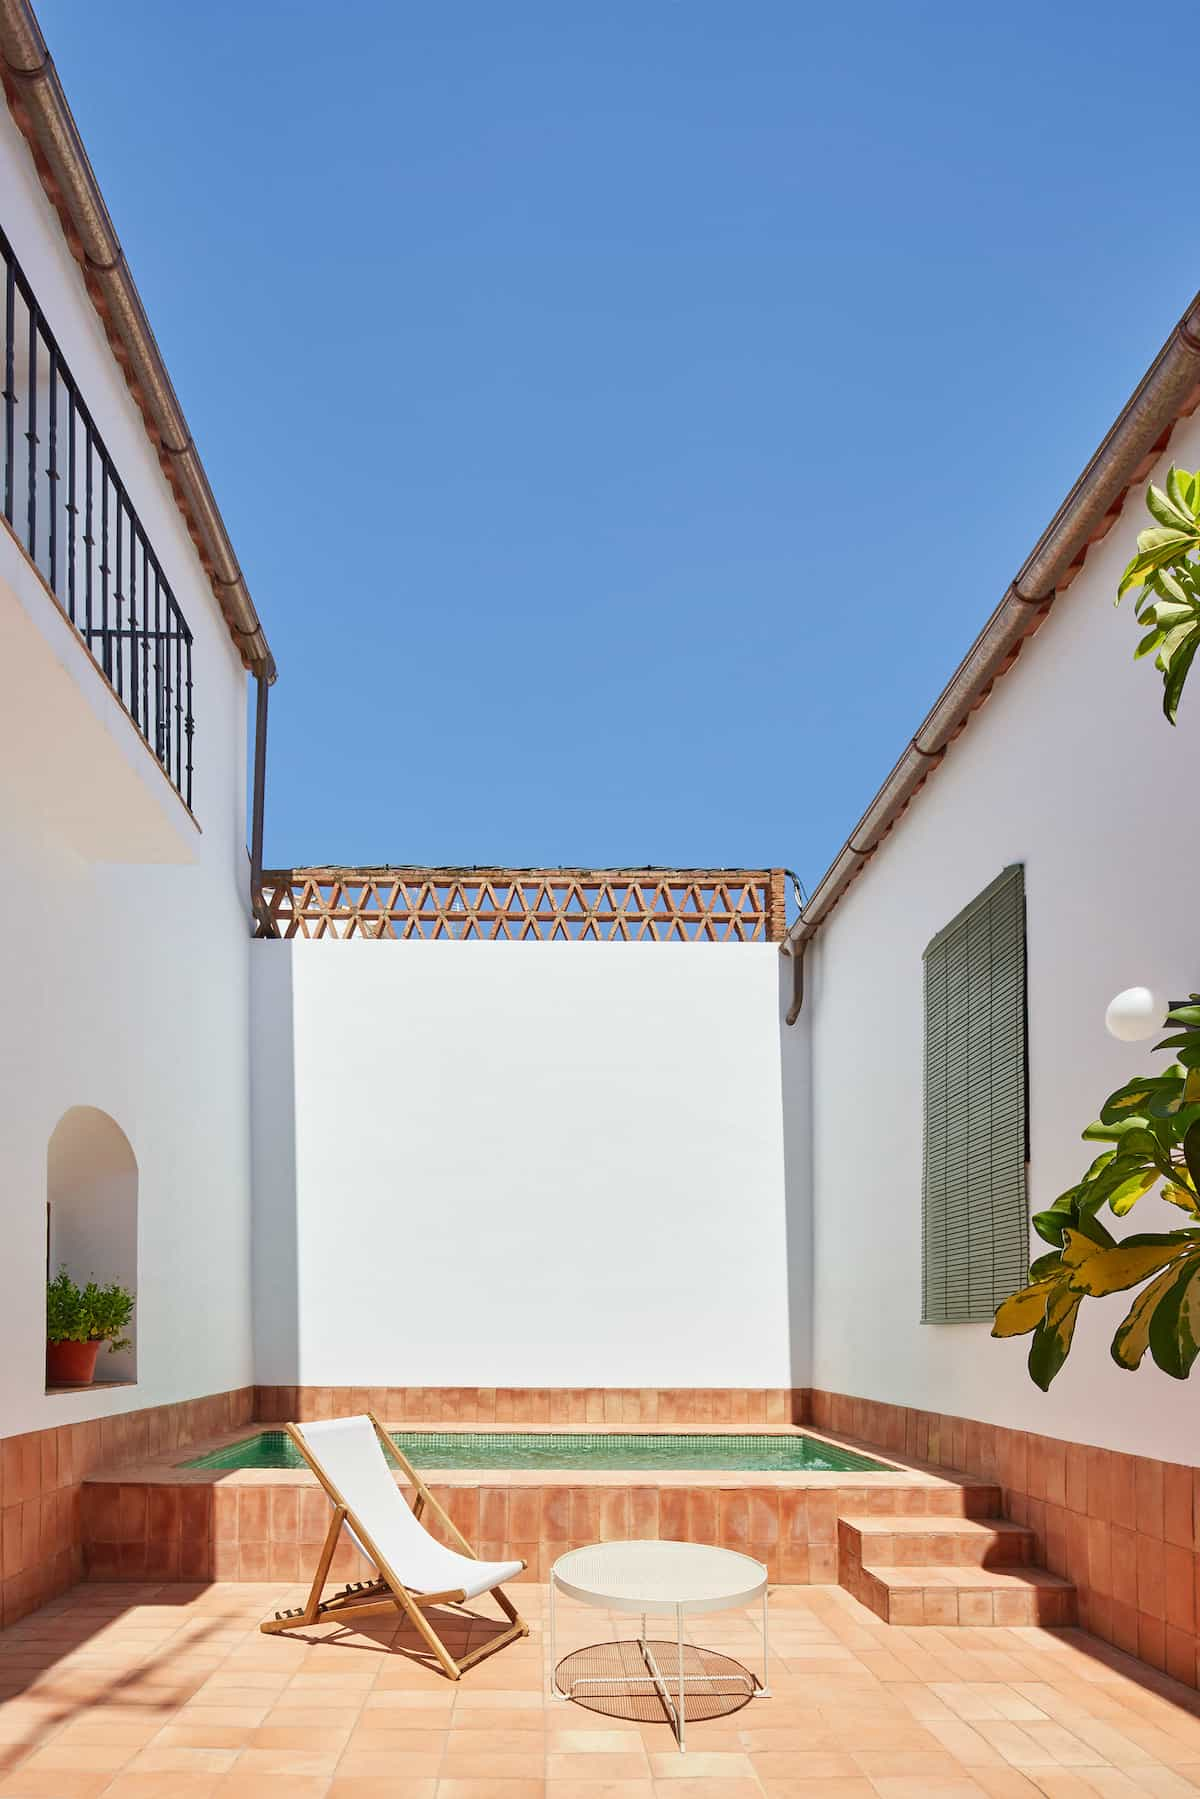 Courtyard with a a small pool in the Casa Villa Ba in Spain